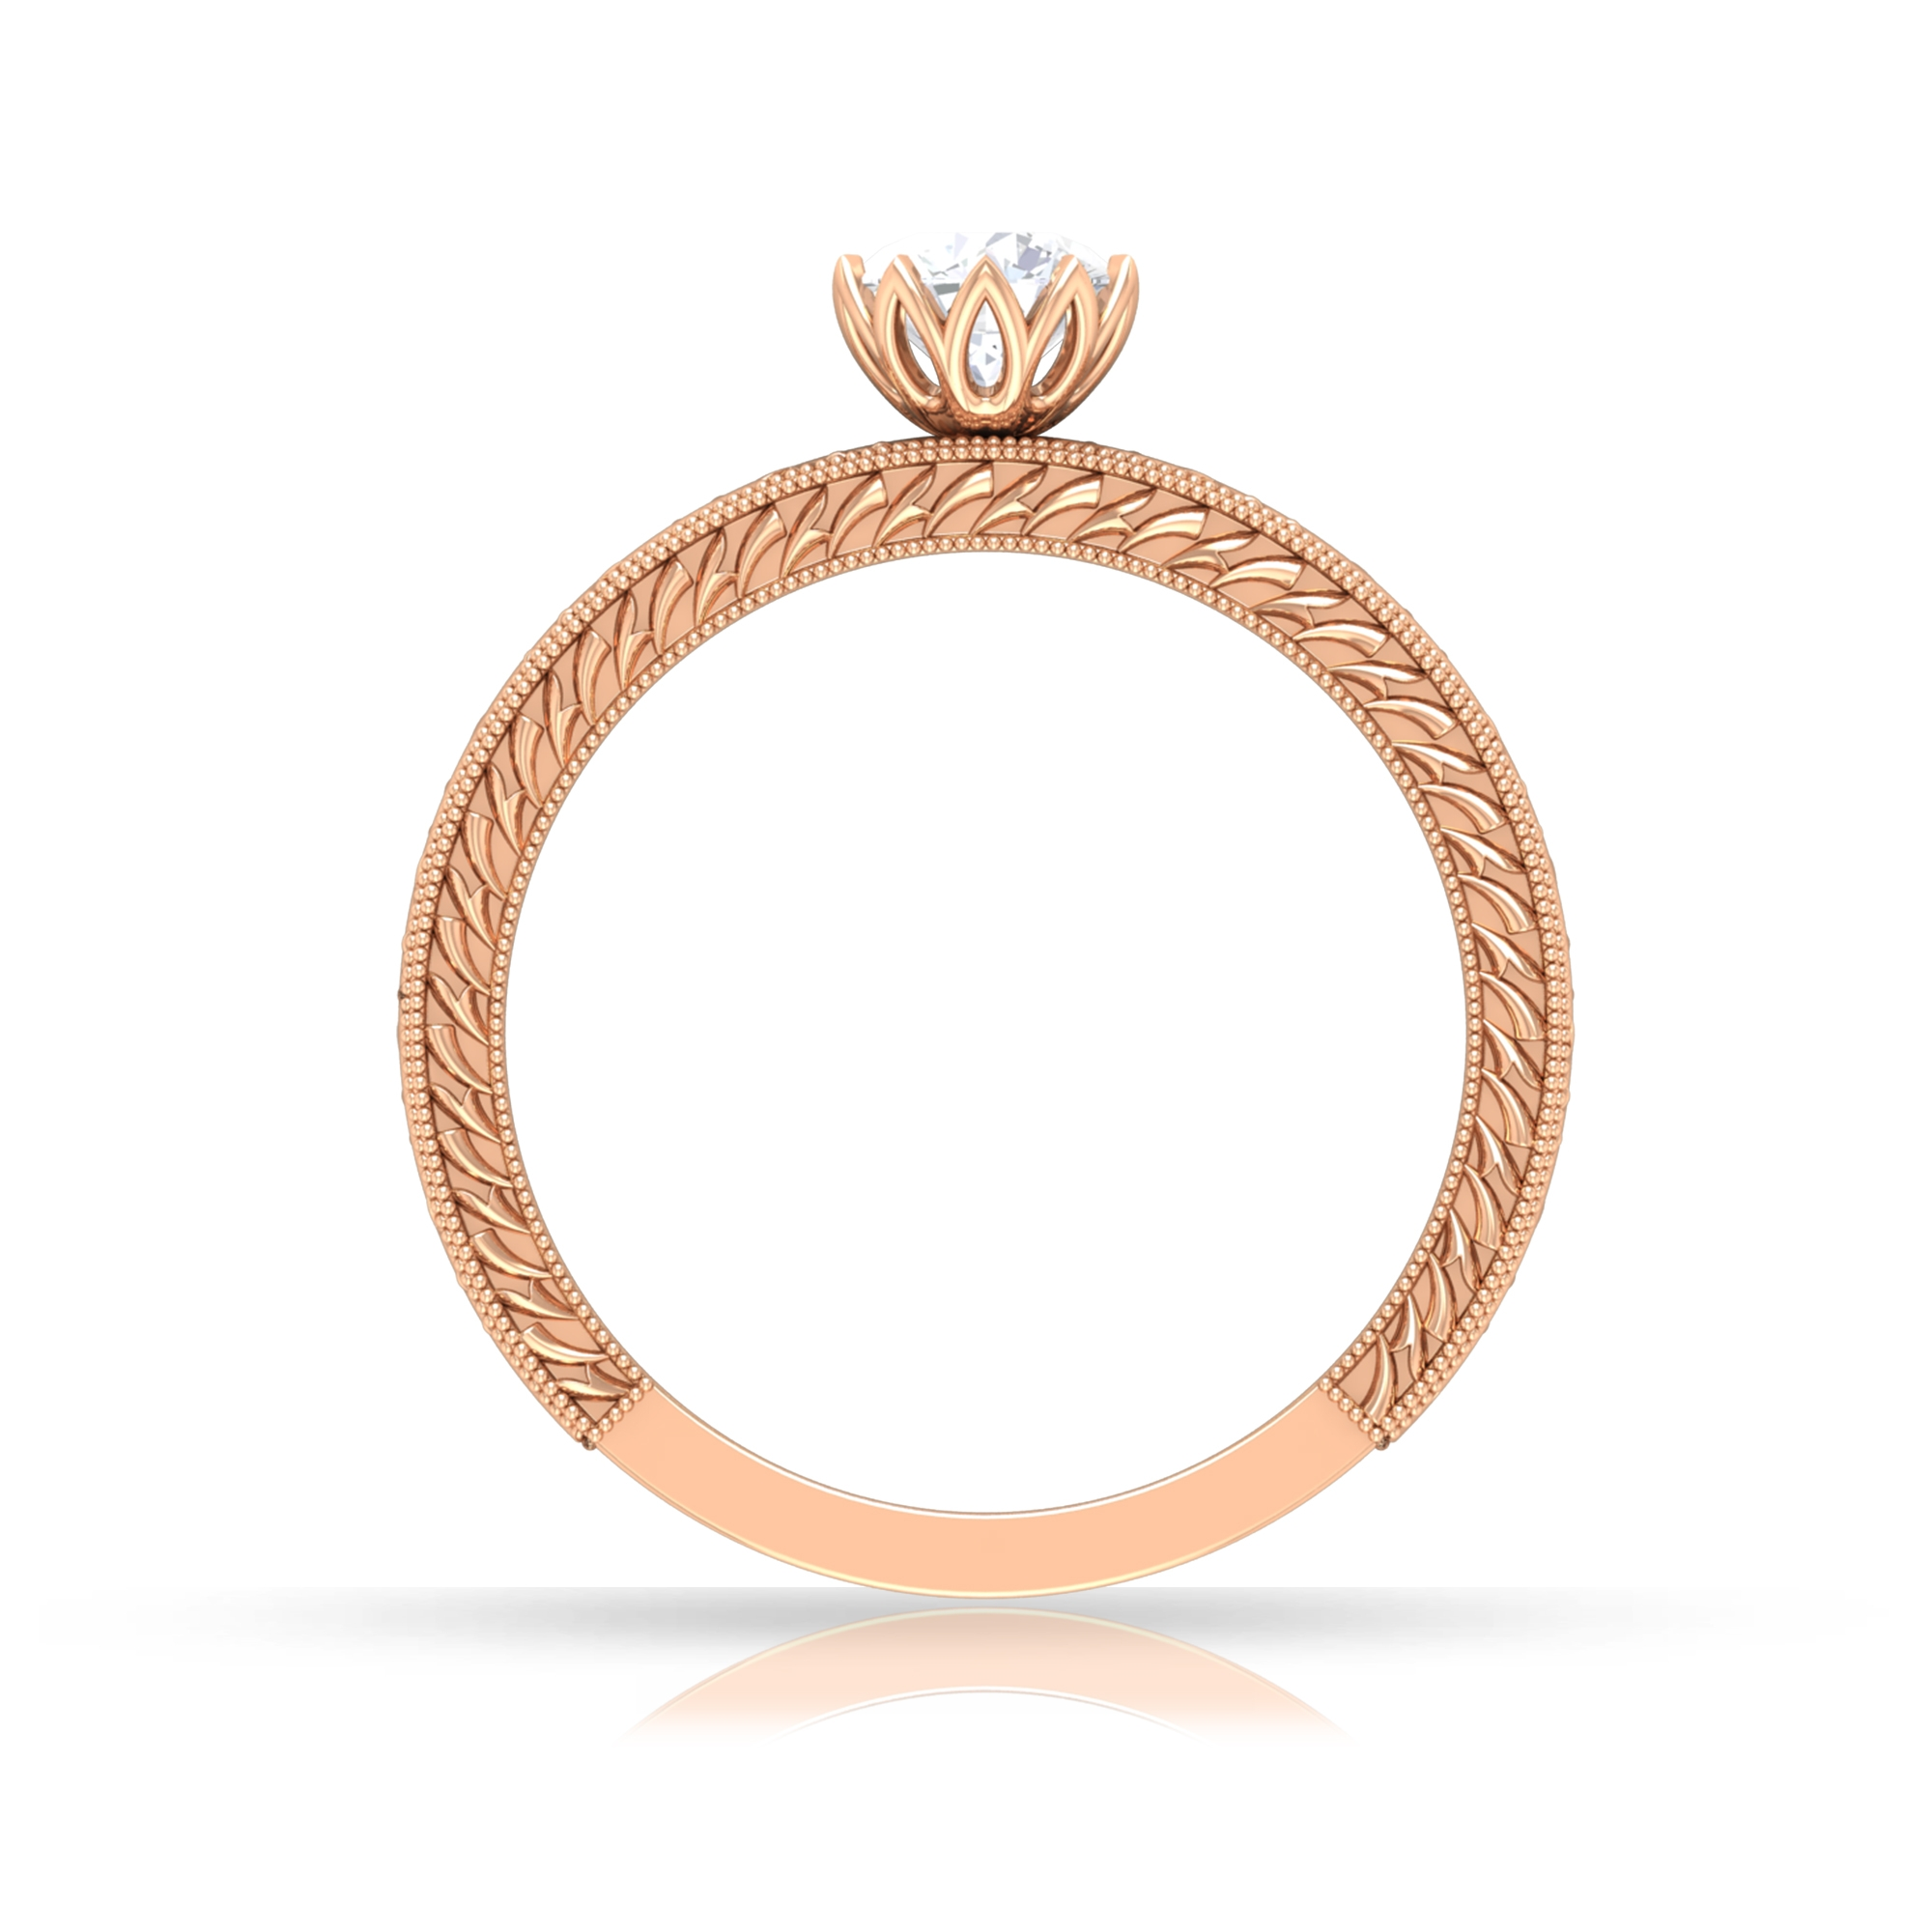 5 MM Round Cut Diamond Solitaire Ring in Lotus Basket Setting with Engraved Details